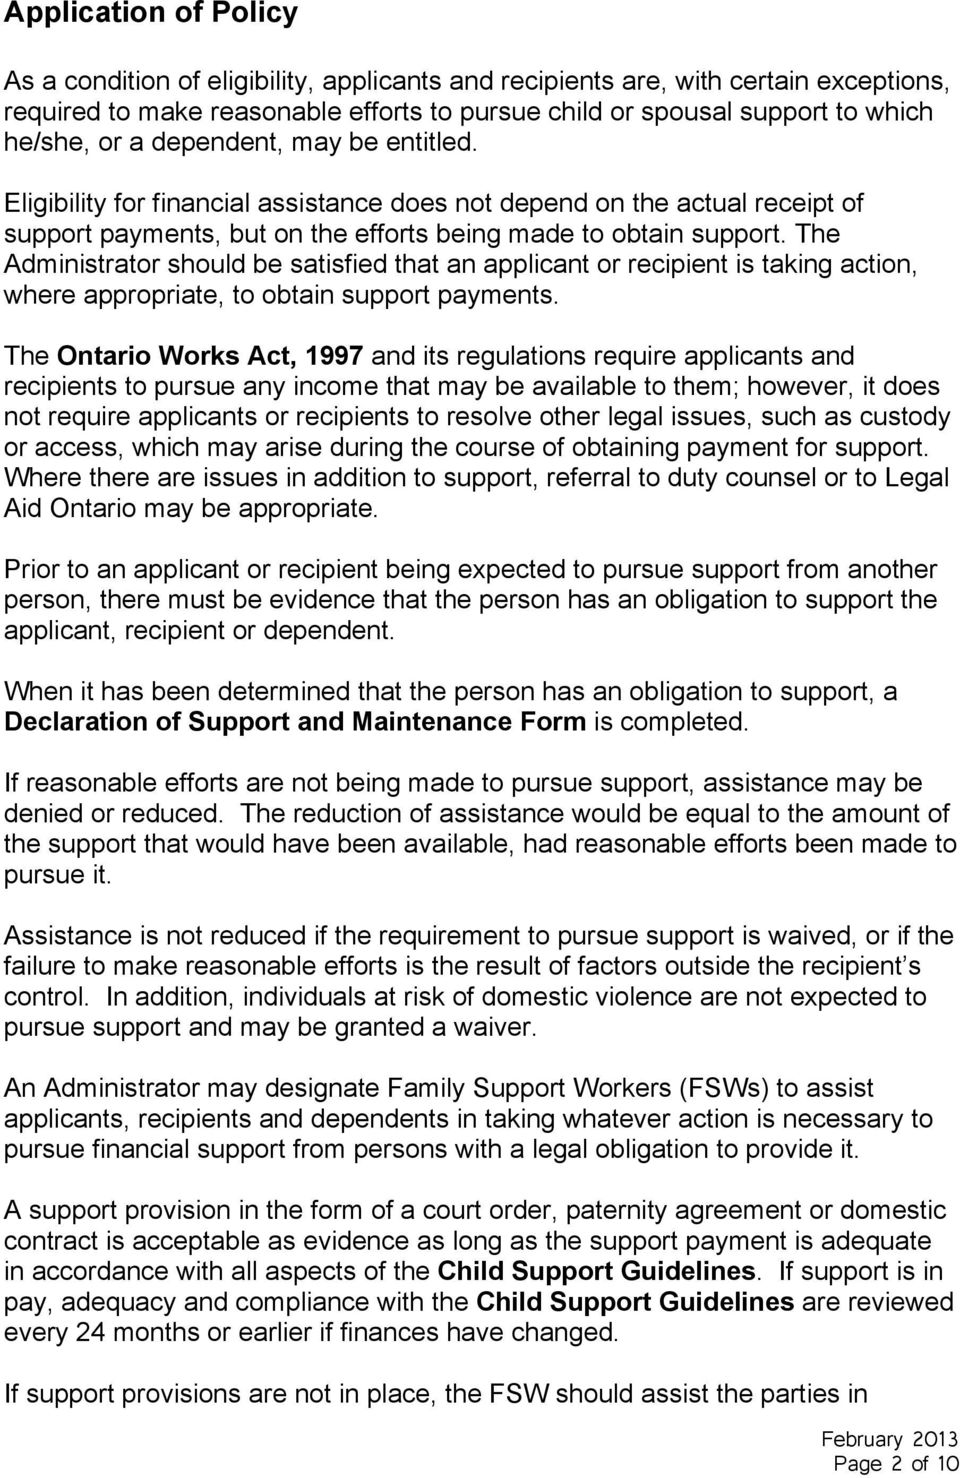 The Administrator should be satisfied that an applicant or recipient is taking action, where appropriate, to obtain support payments.